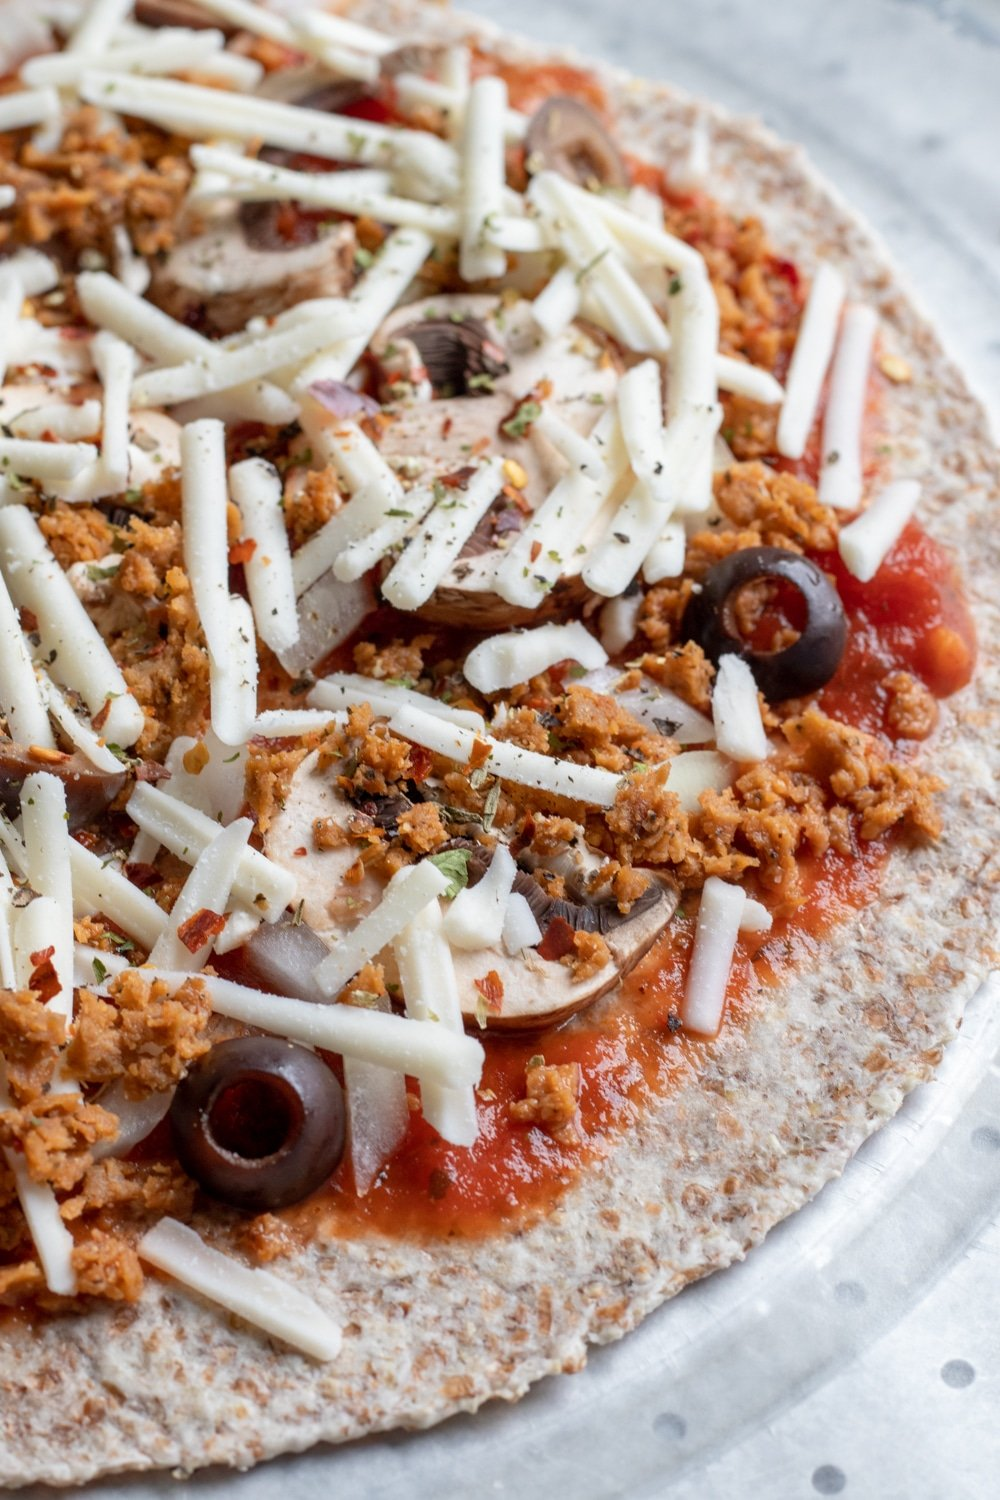 easy vegan pizza prepped, ready to be baked or frozen for later